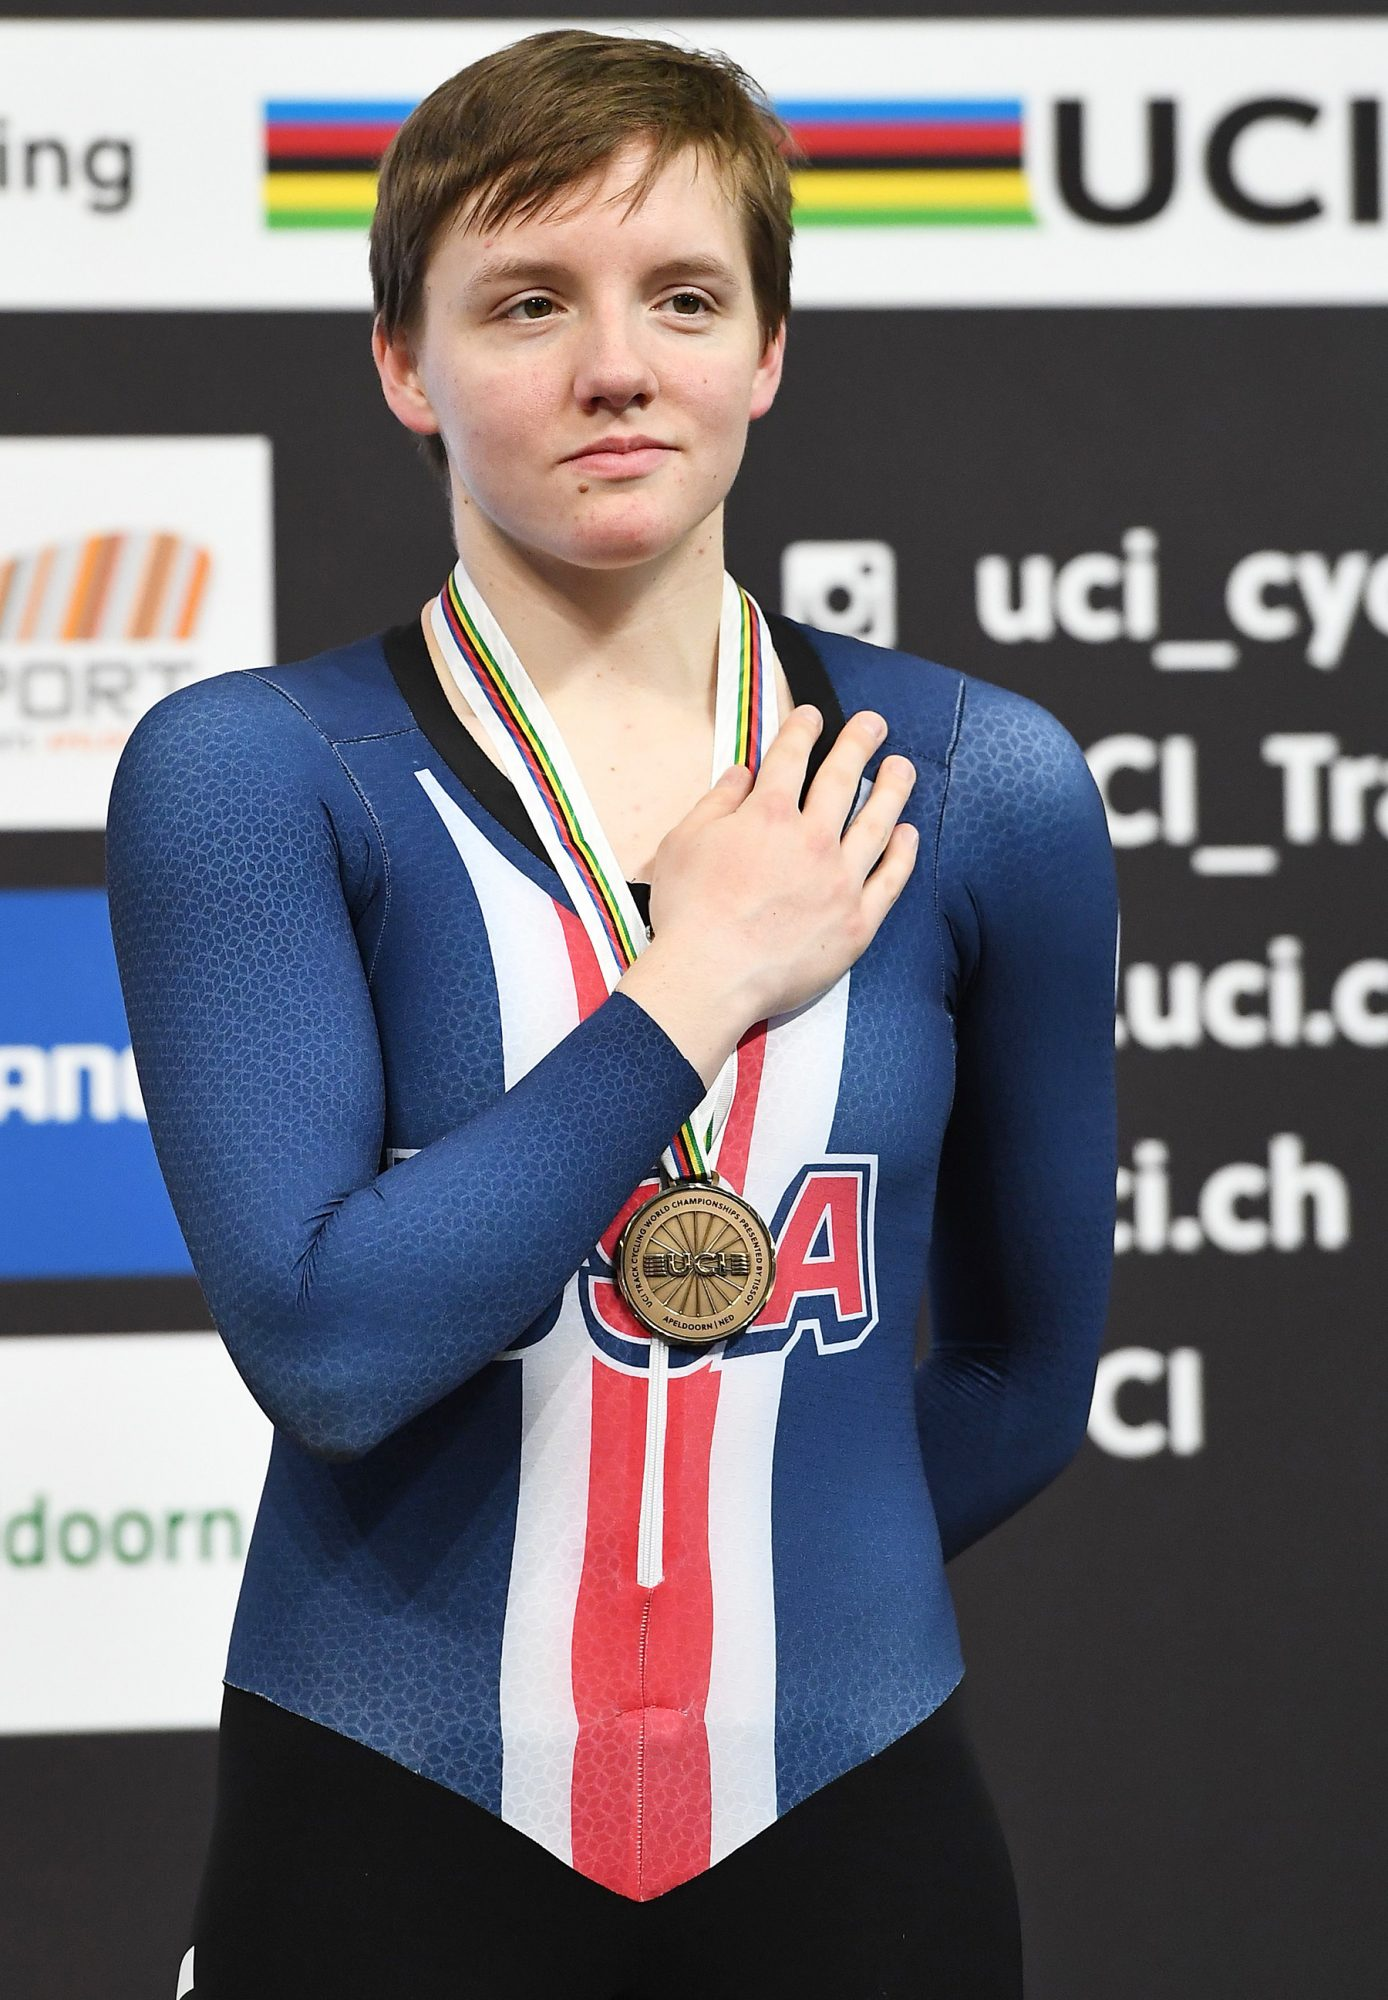 CYCLING-NED-UCI-WORLD-TRACK-WOMEN-PURSUIT-PODIUM